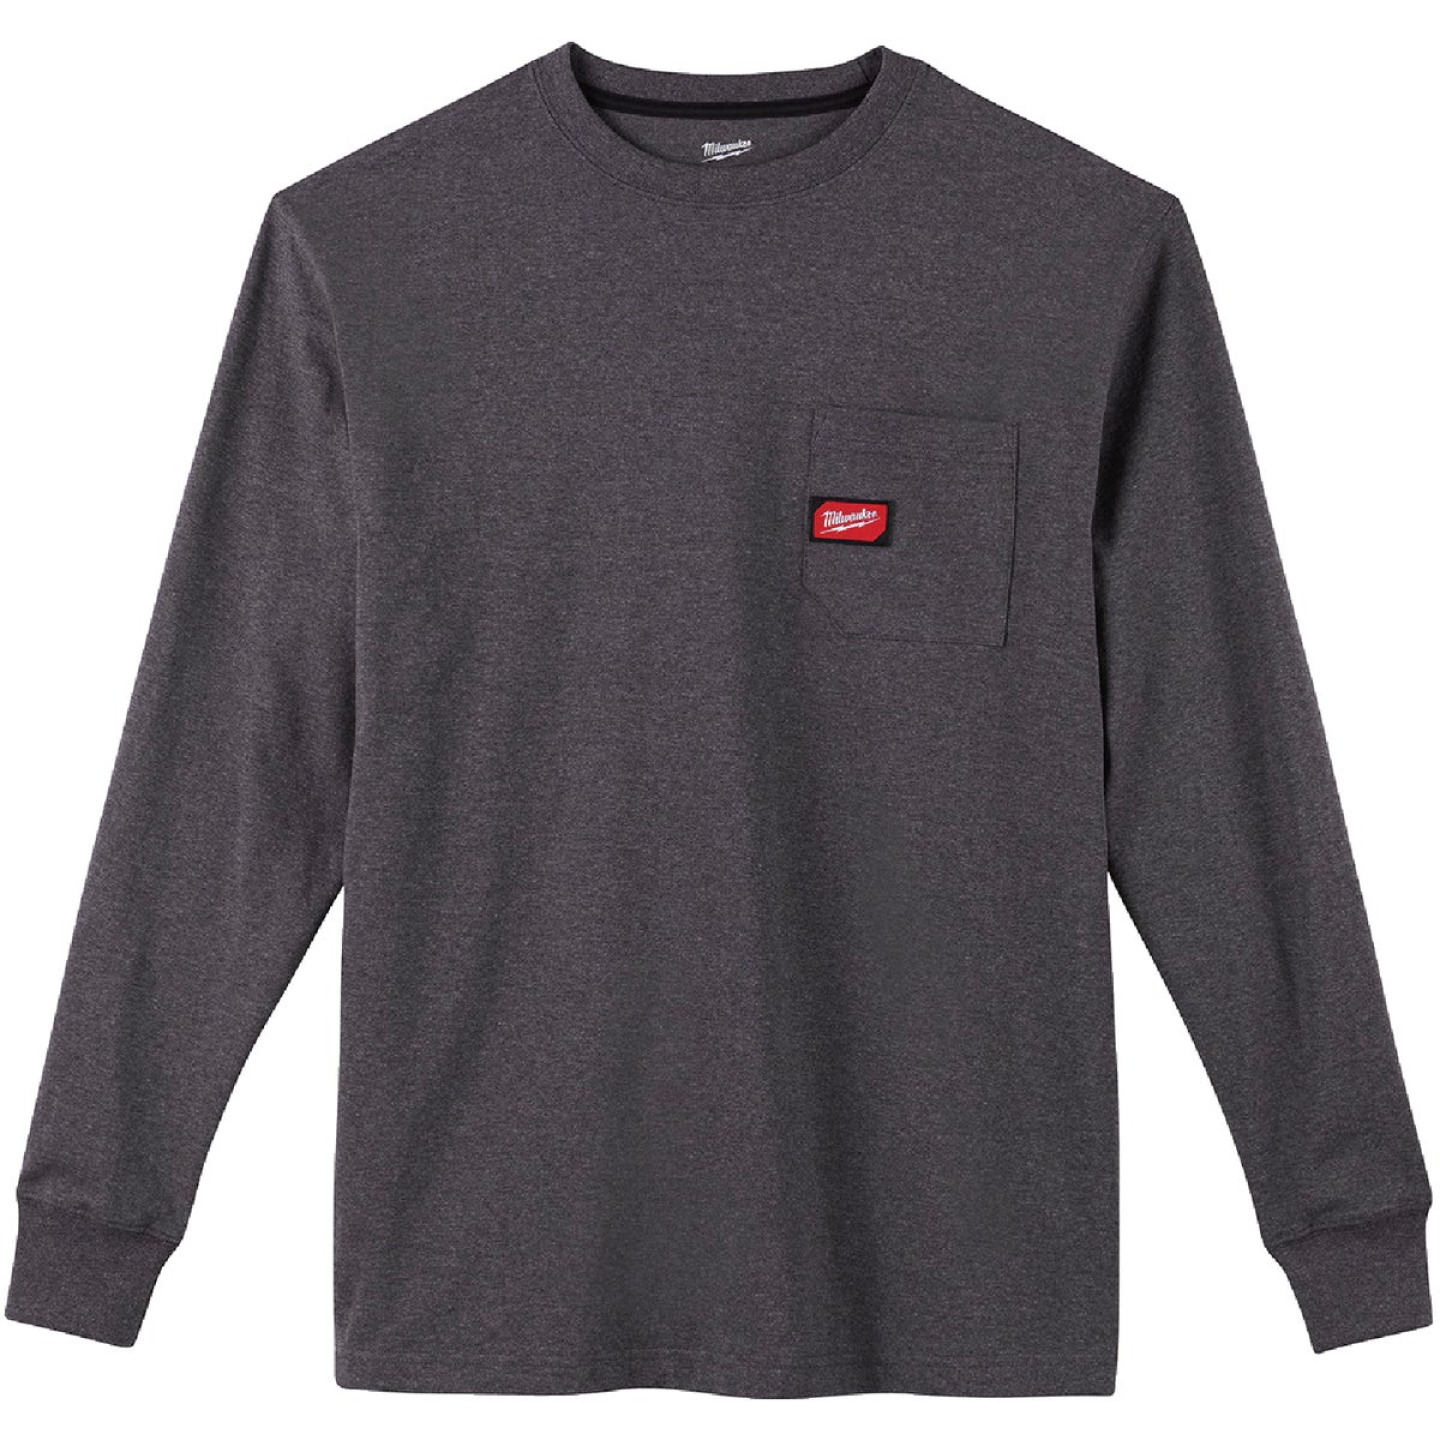 Milwaukee XL Gray Long Sleeve Men's Heavy-Duty Pocket Shirt Image 3